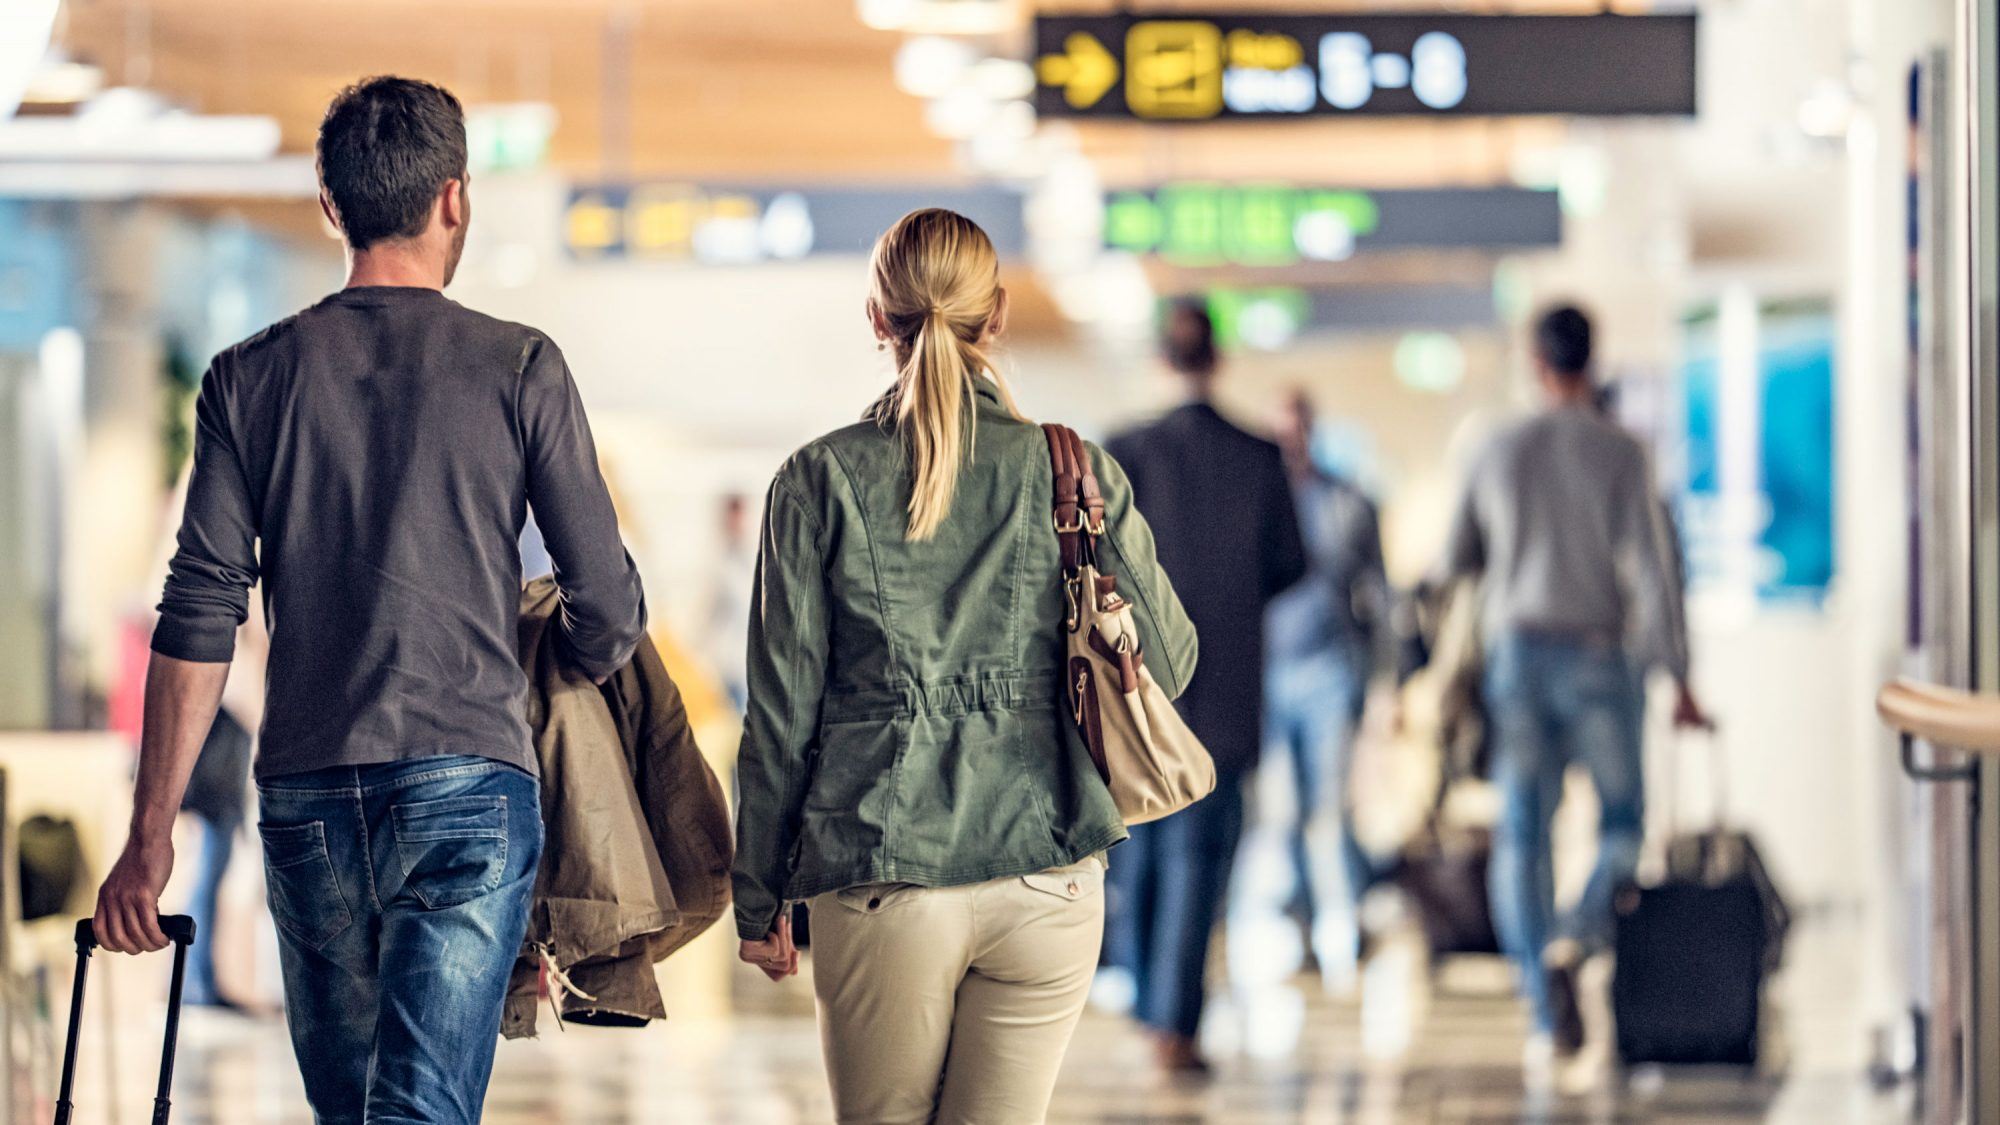 Couple Walking Through Airport Lobby